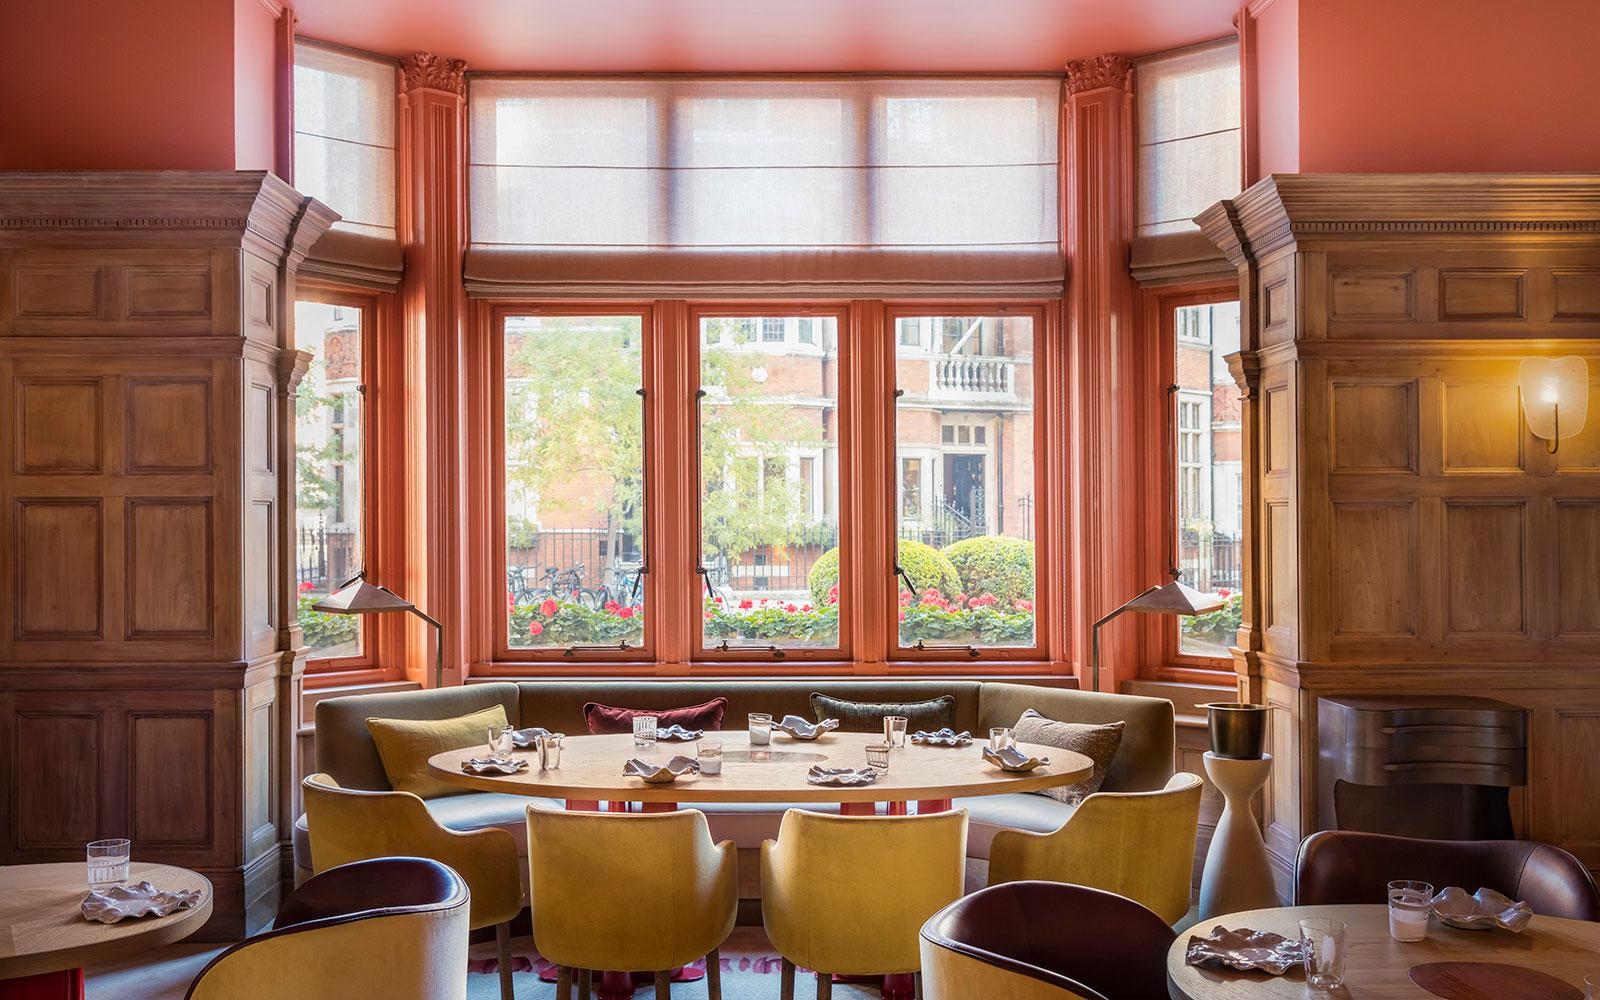 helene darroze at the connaught 2